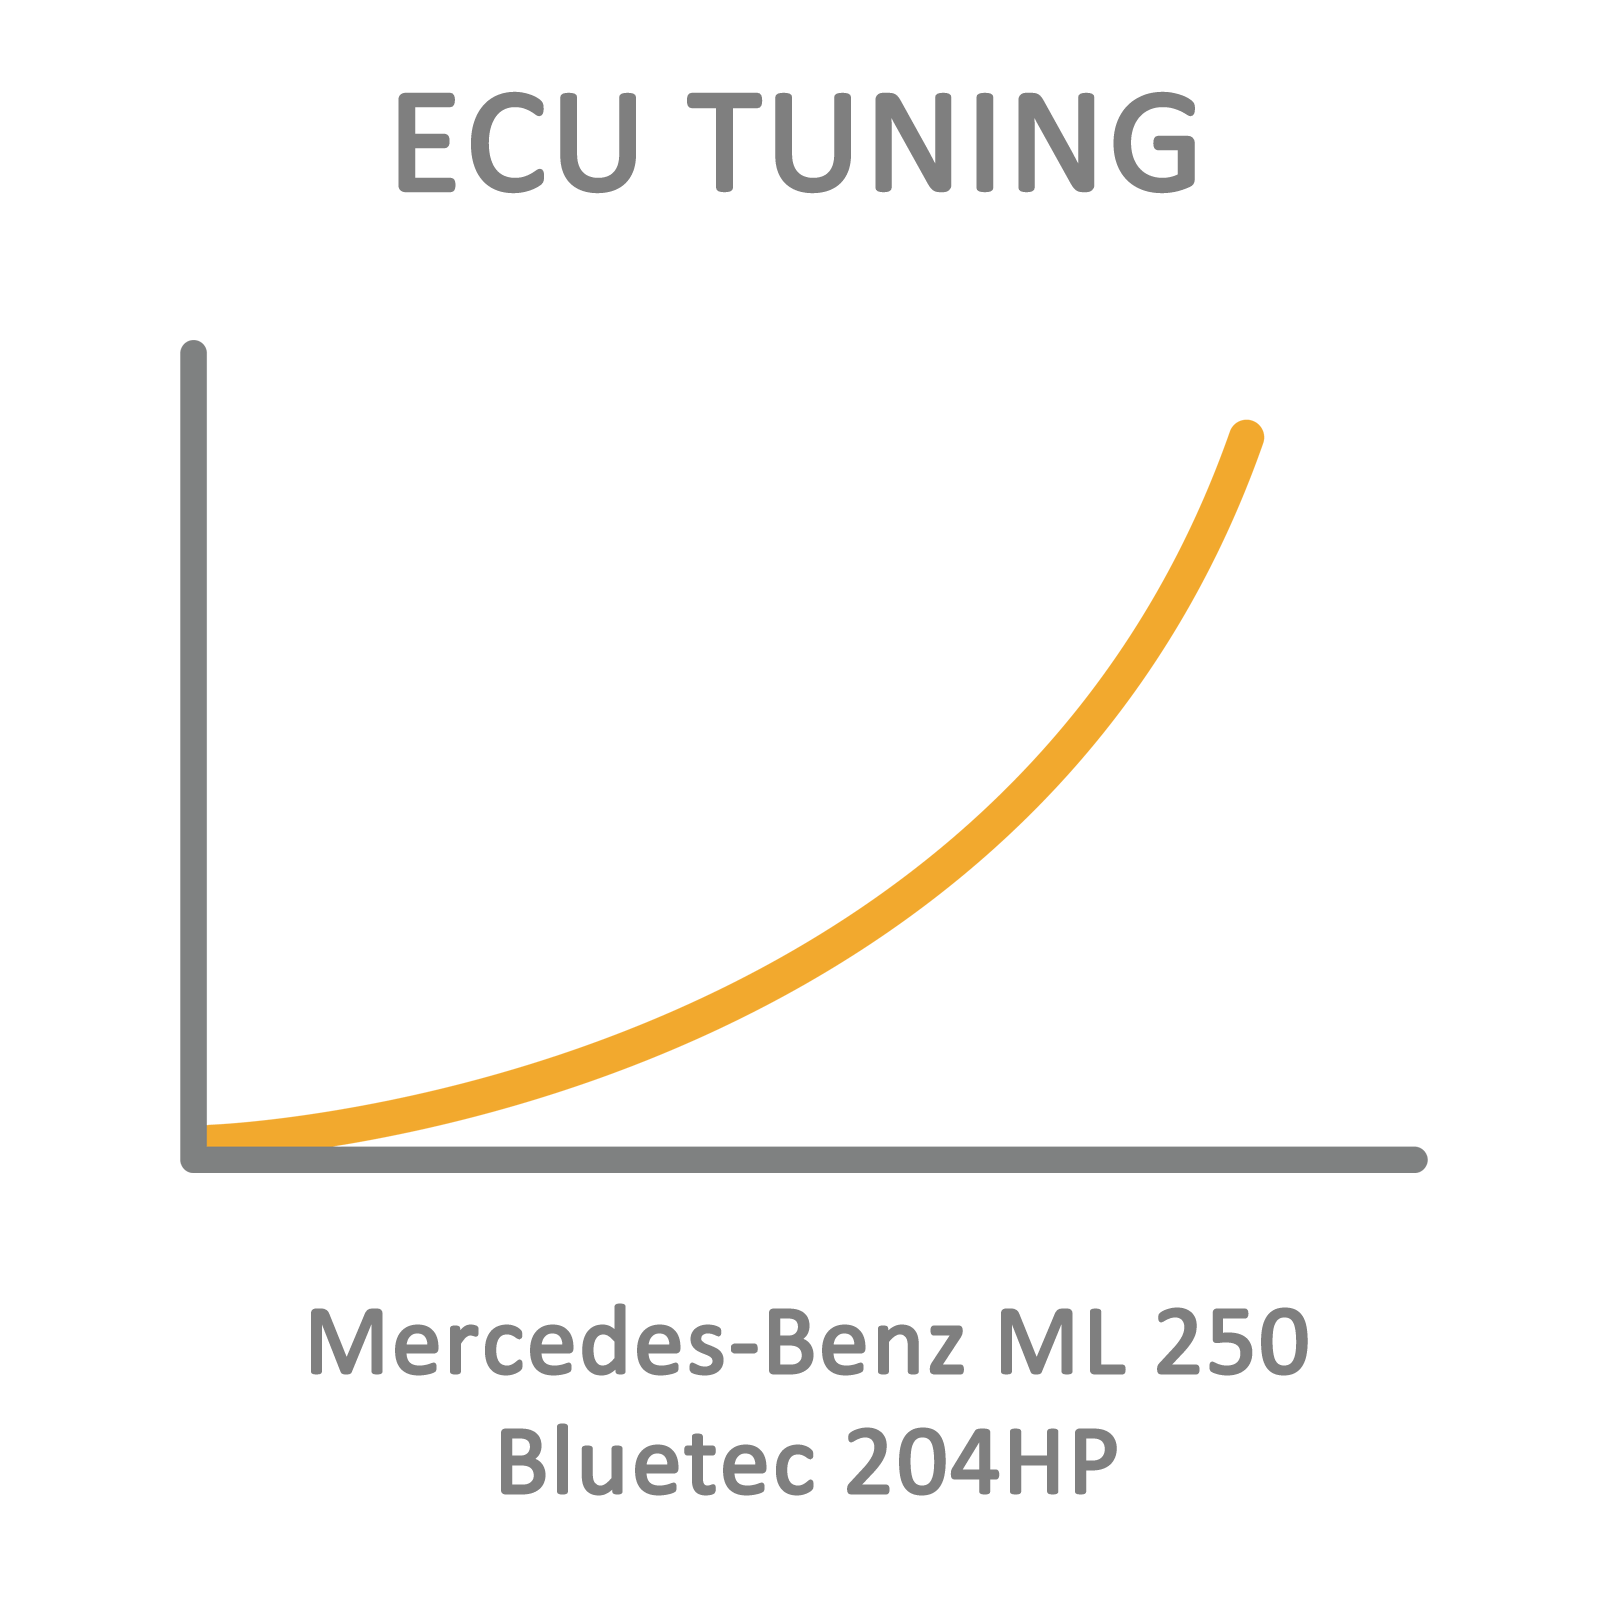 Mercedes-Benz ML 250 Bluetec 204HP ECU Tuning Remapping